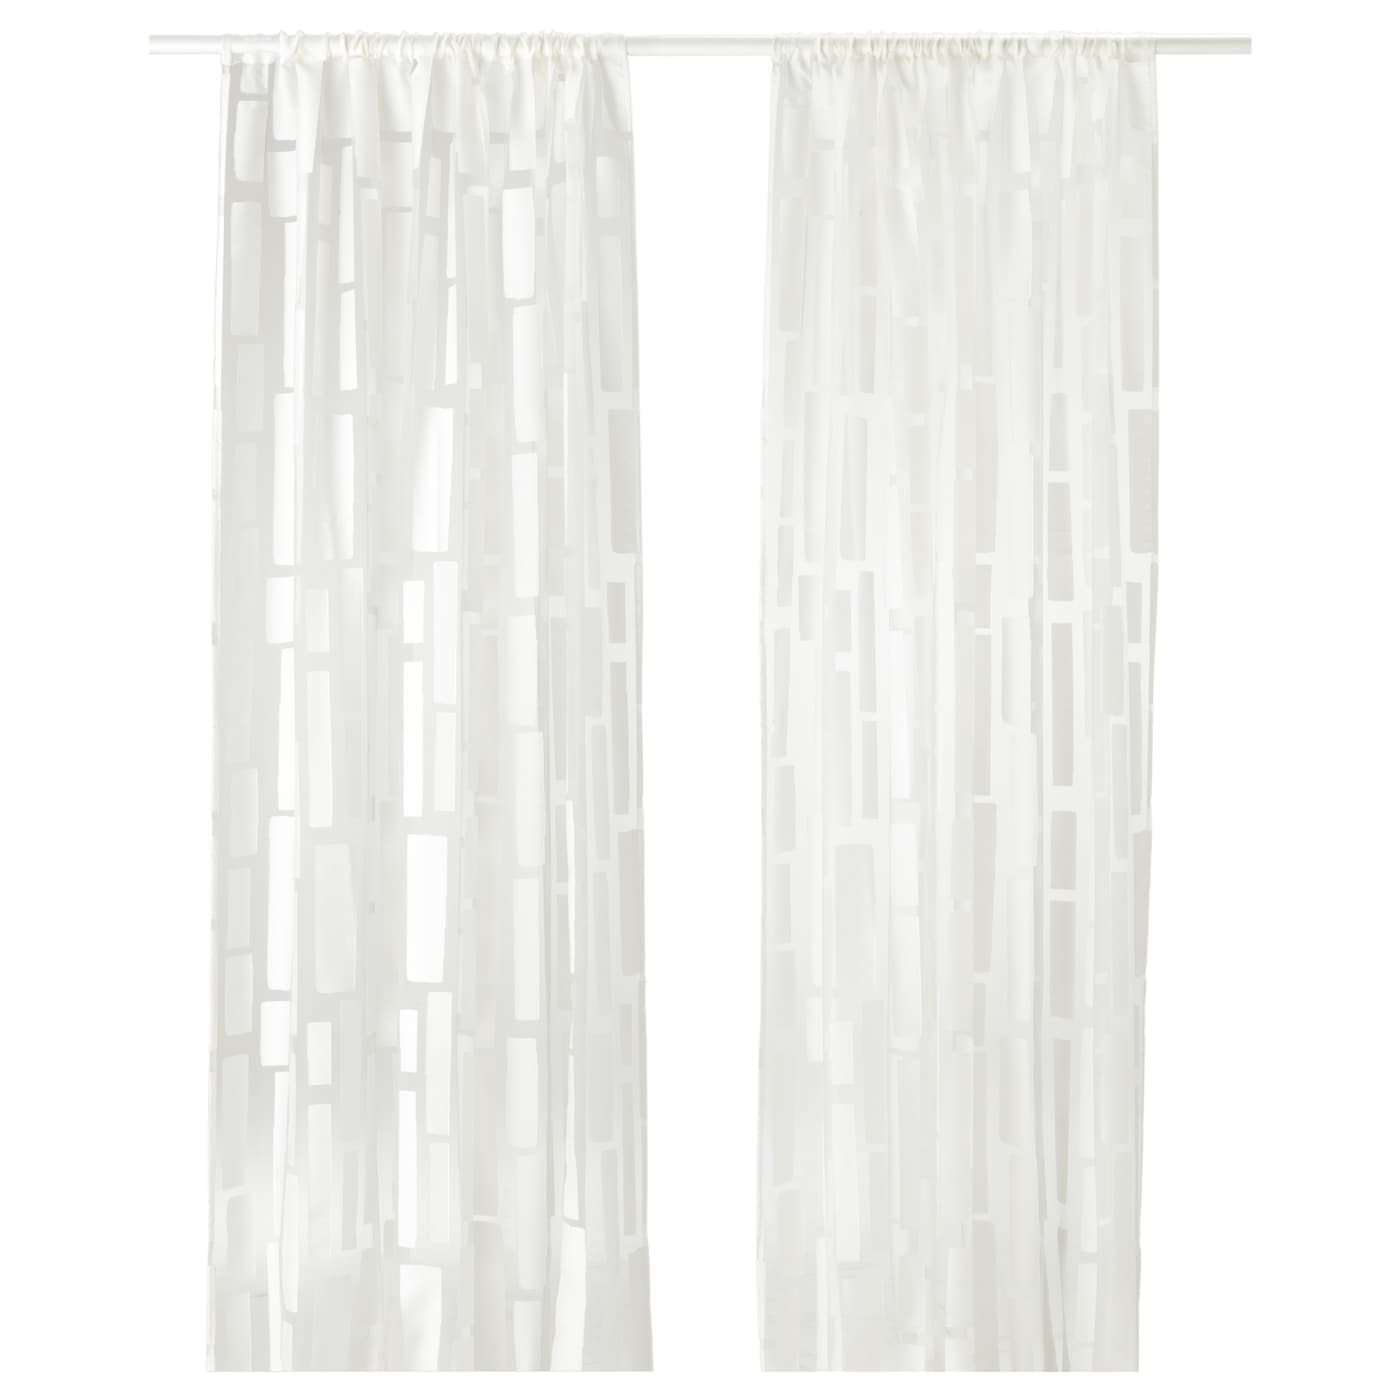 Curtains blinds ikea for Ikea cafe curtains